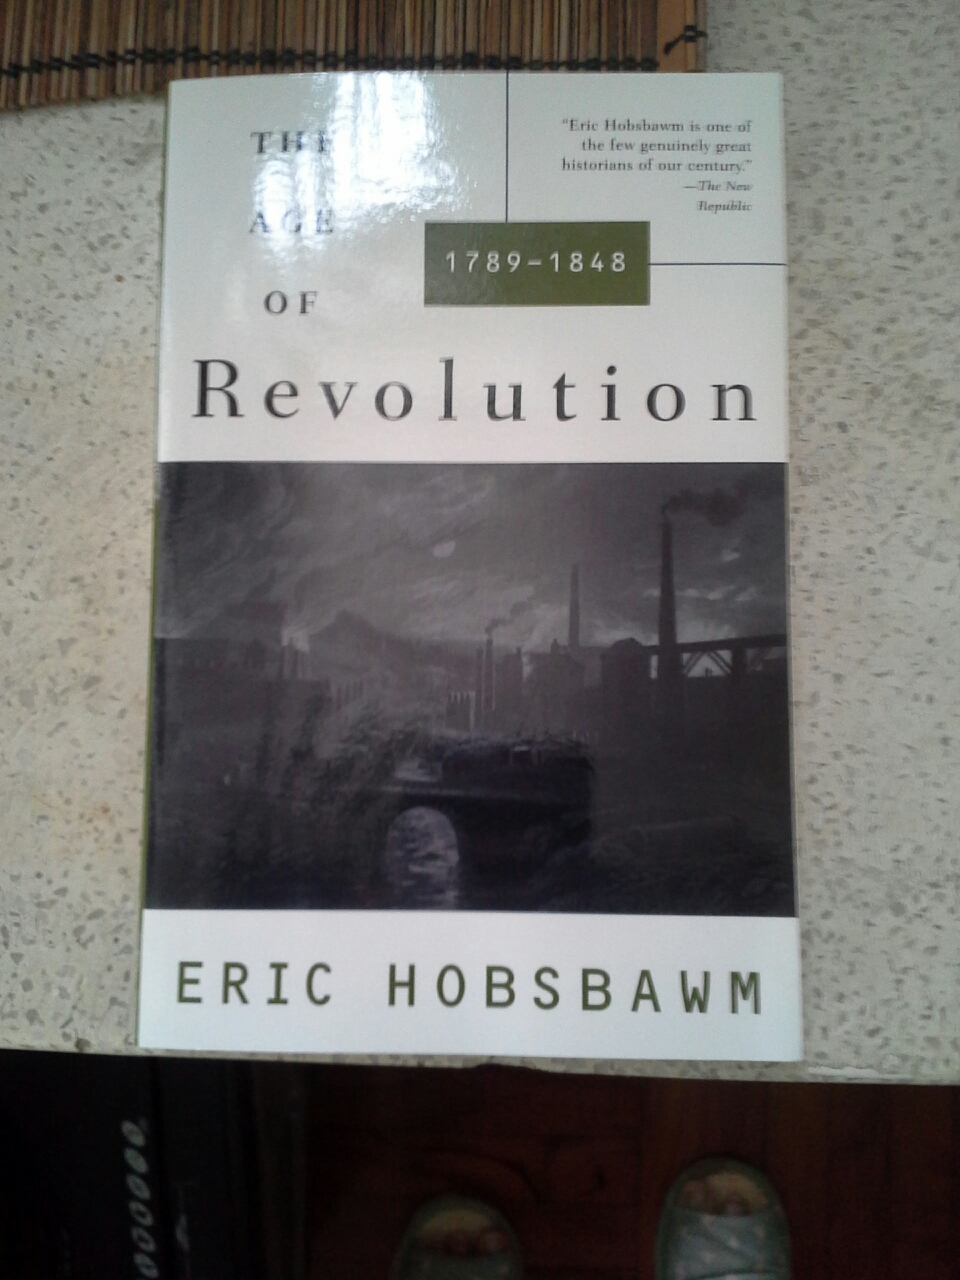 The Age of Revolution 1789-1848 by Eric Hobsbawm image